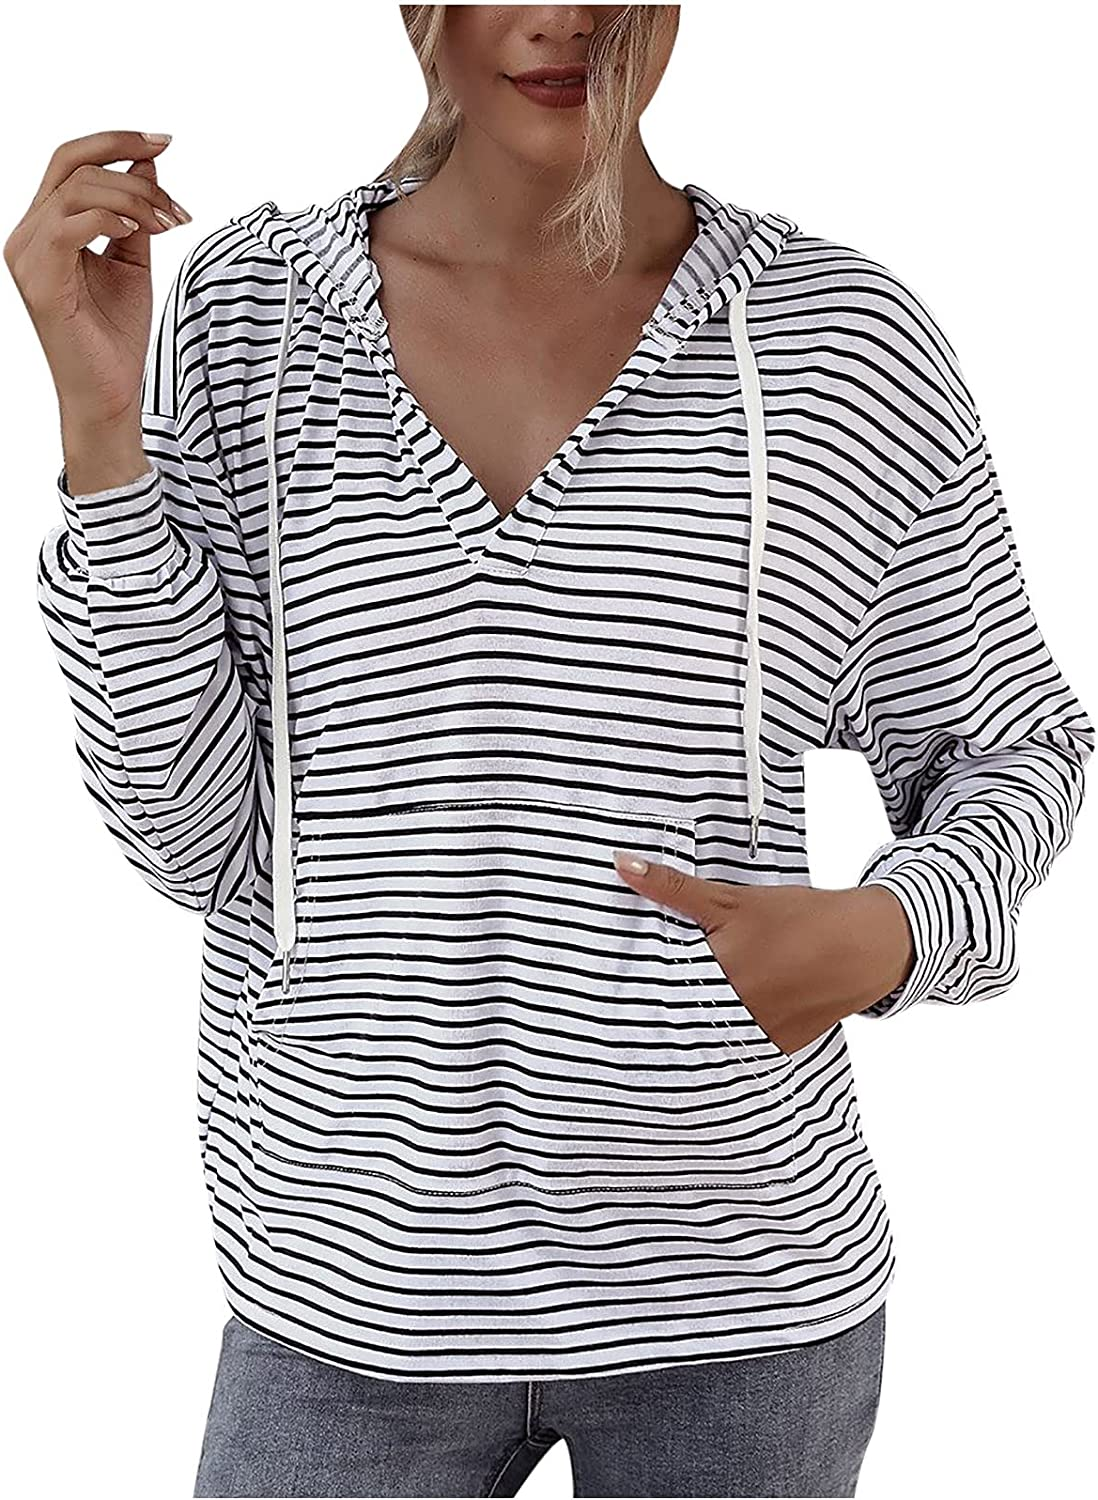 Drawstring Stripes Pullover Hoodies For Women V Neck Long Sleeve Blouse Casual Loose Sweatshirt Tops With Pockets